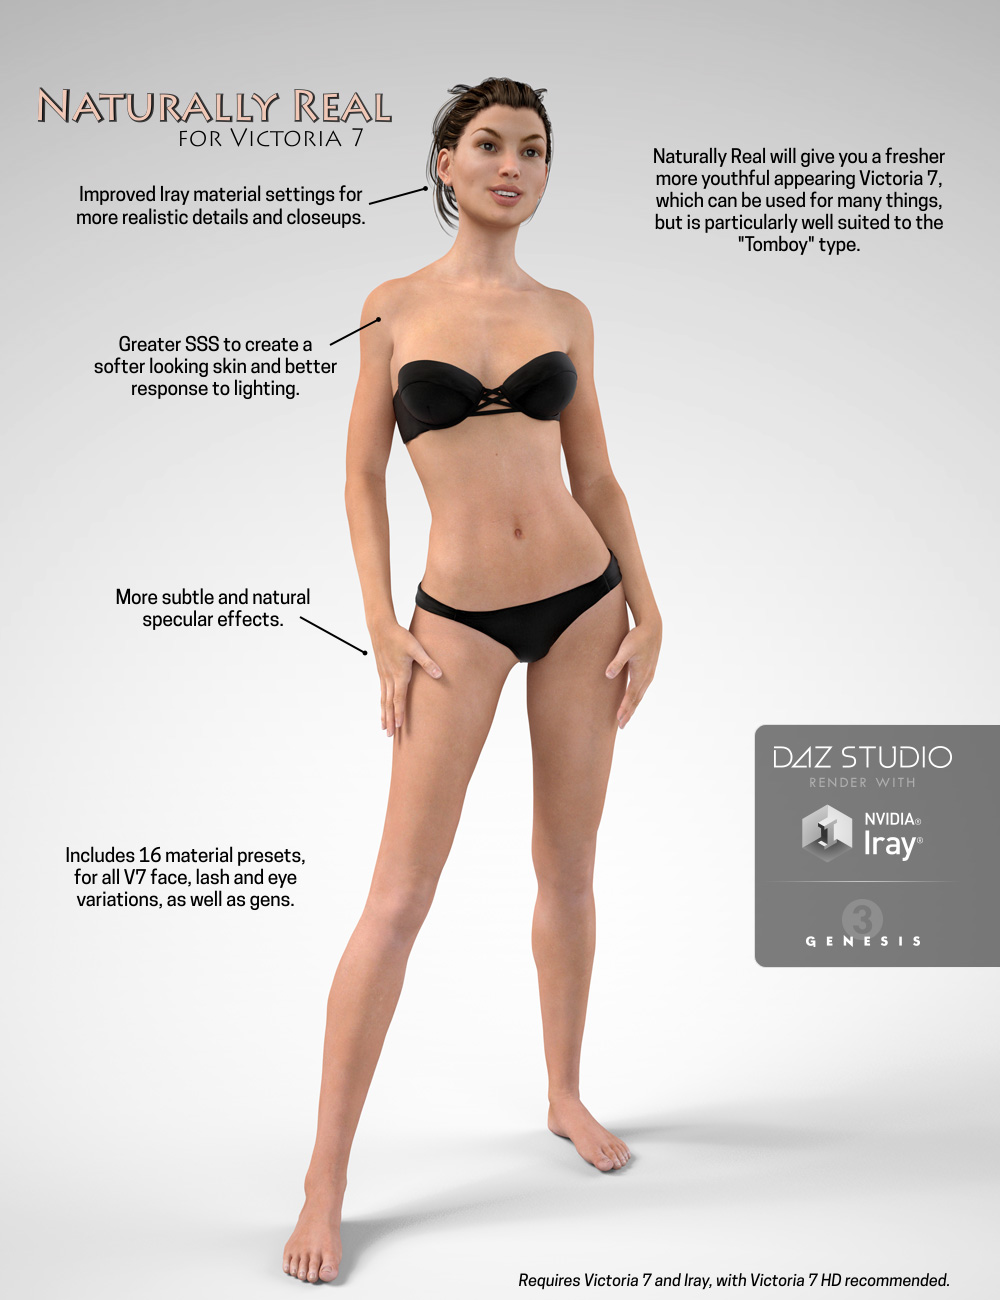 Naturally Real for Victoria 7 by: Half Life, 3D Models by Daz 3D